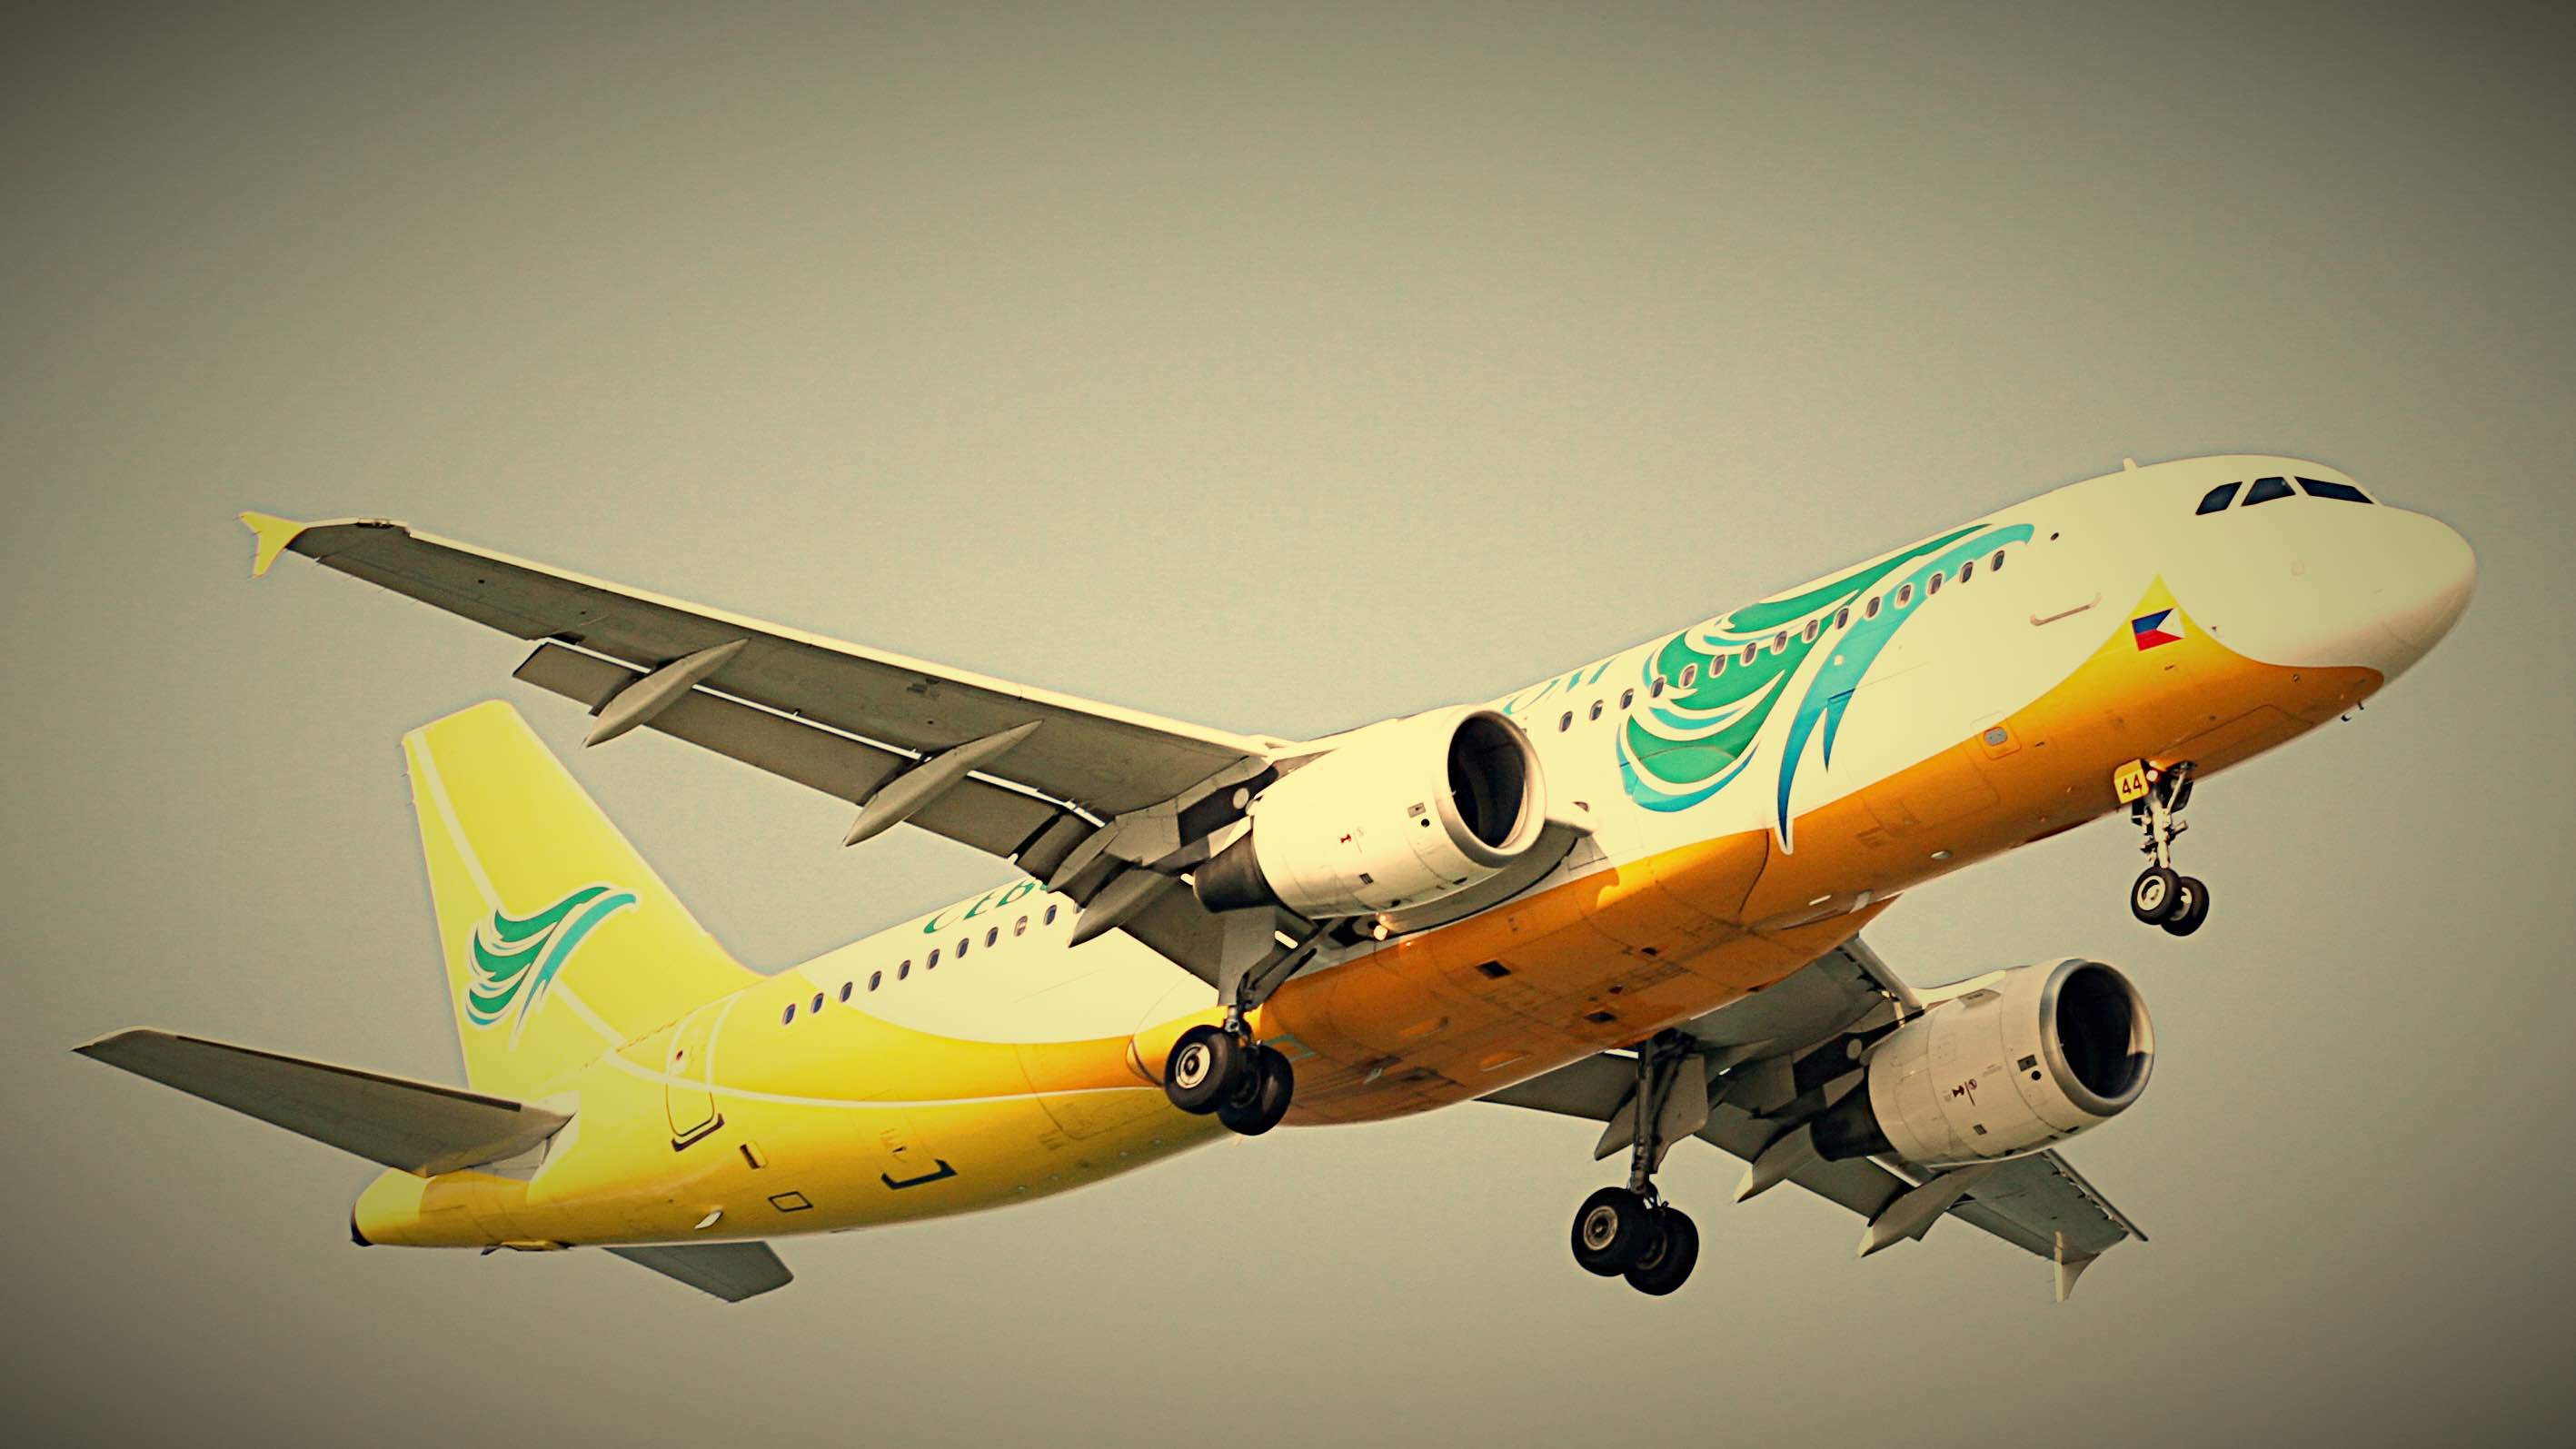 philippine-cebupacific-directflight